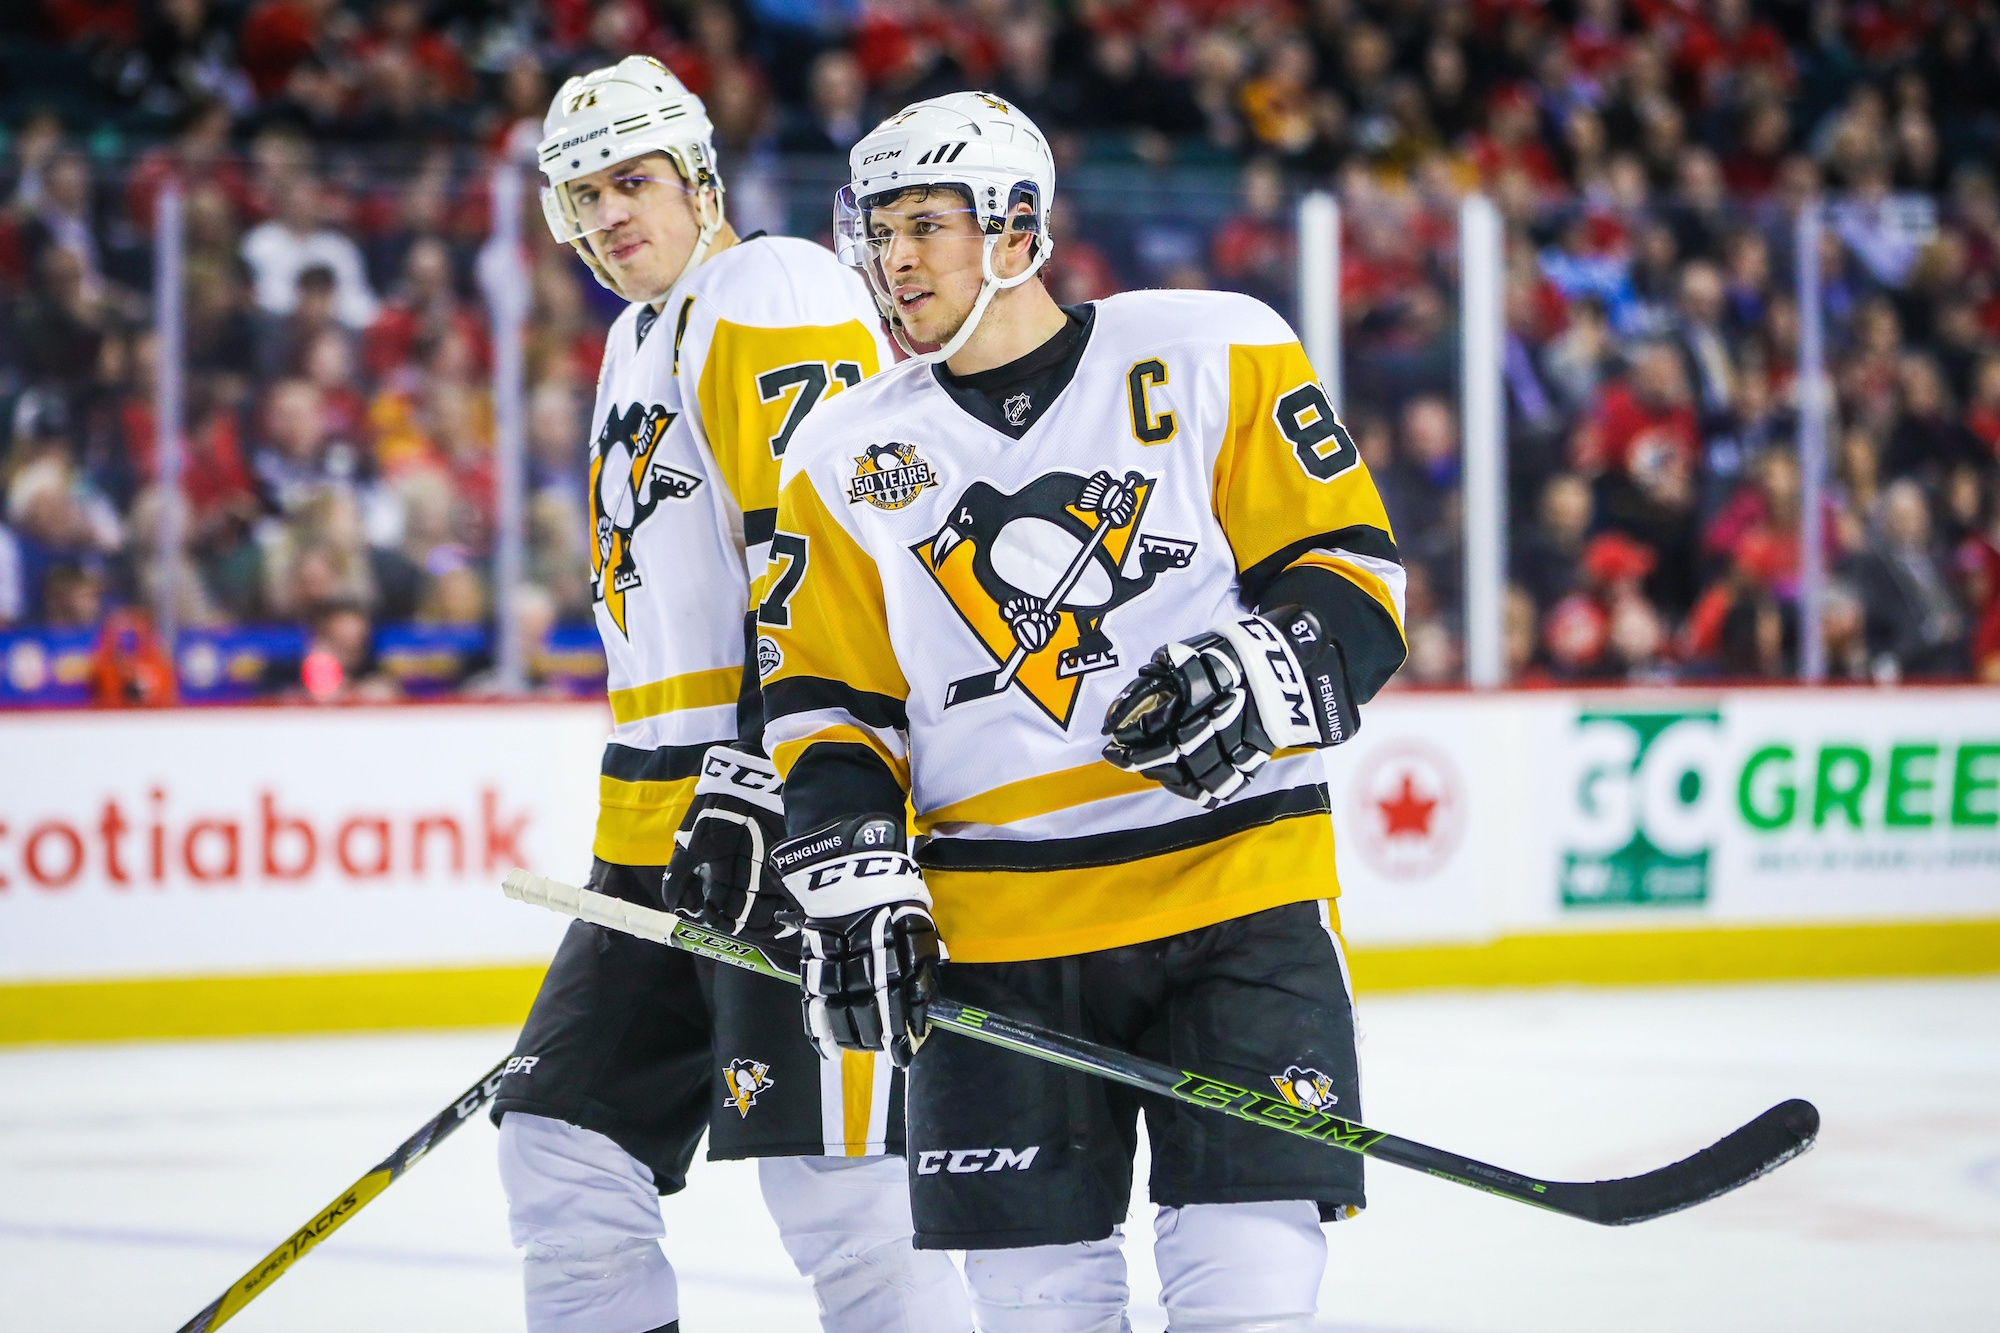 Image result for Crosby Malkin 2017